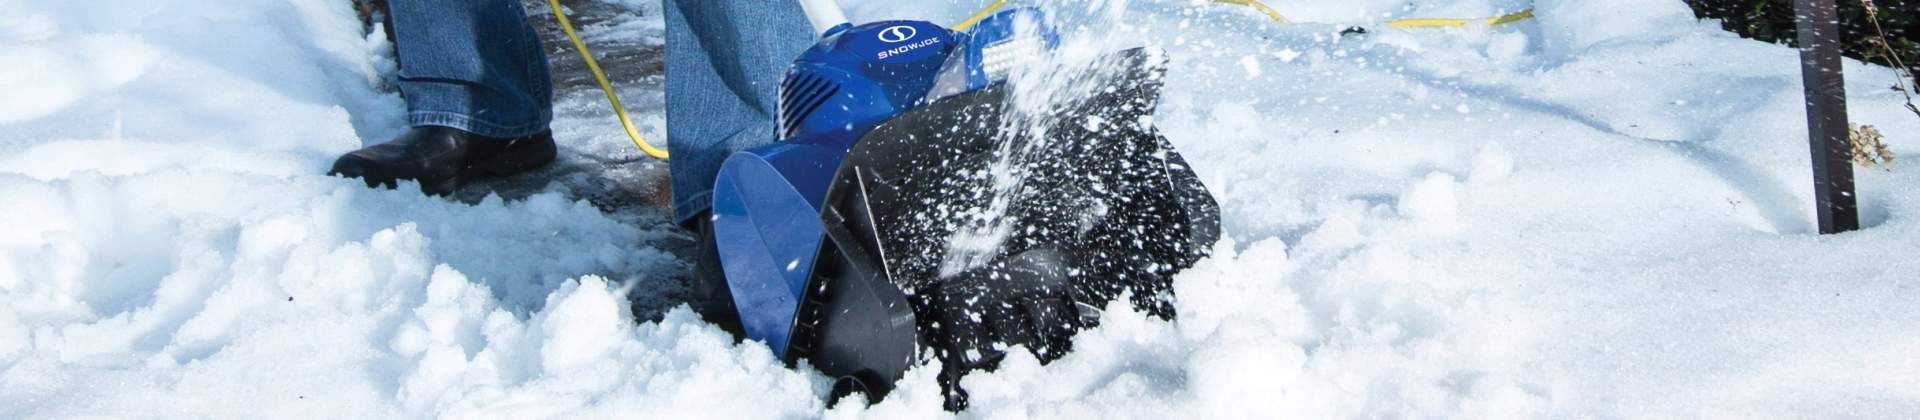 Best Electric Snow Shovels Reviewed